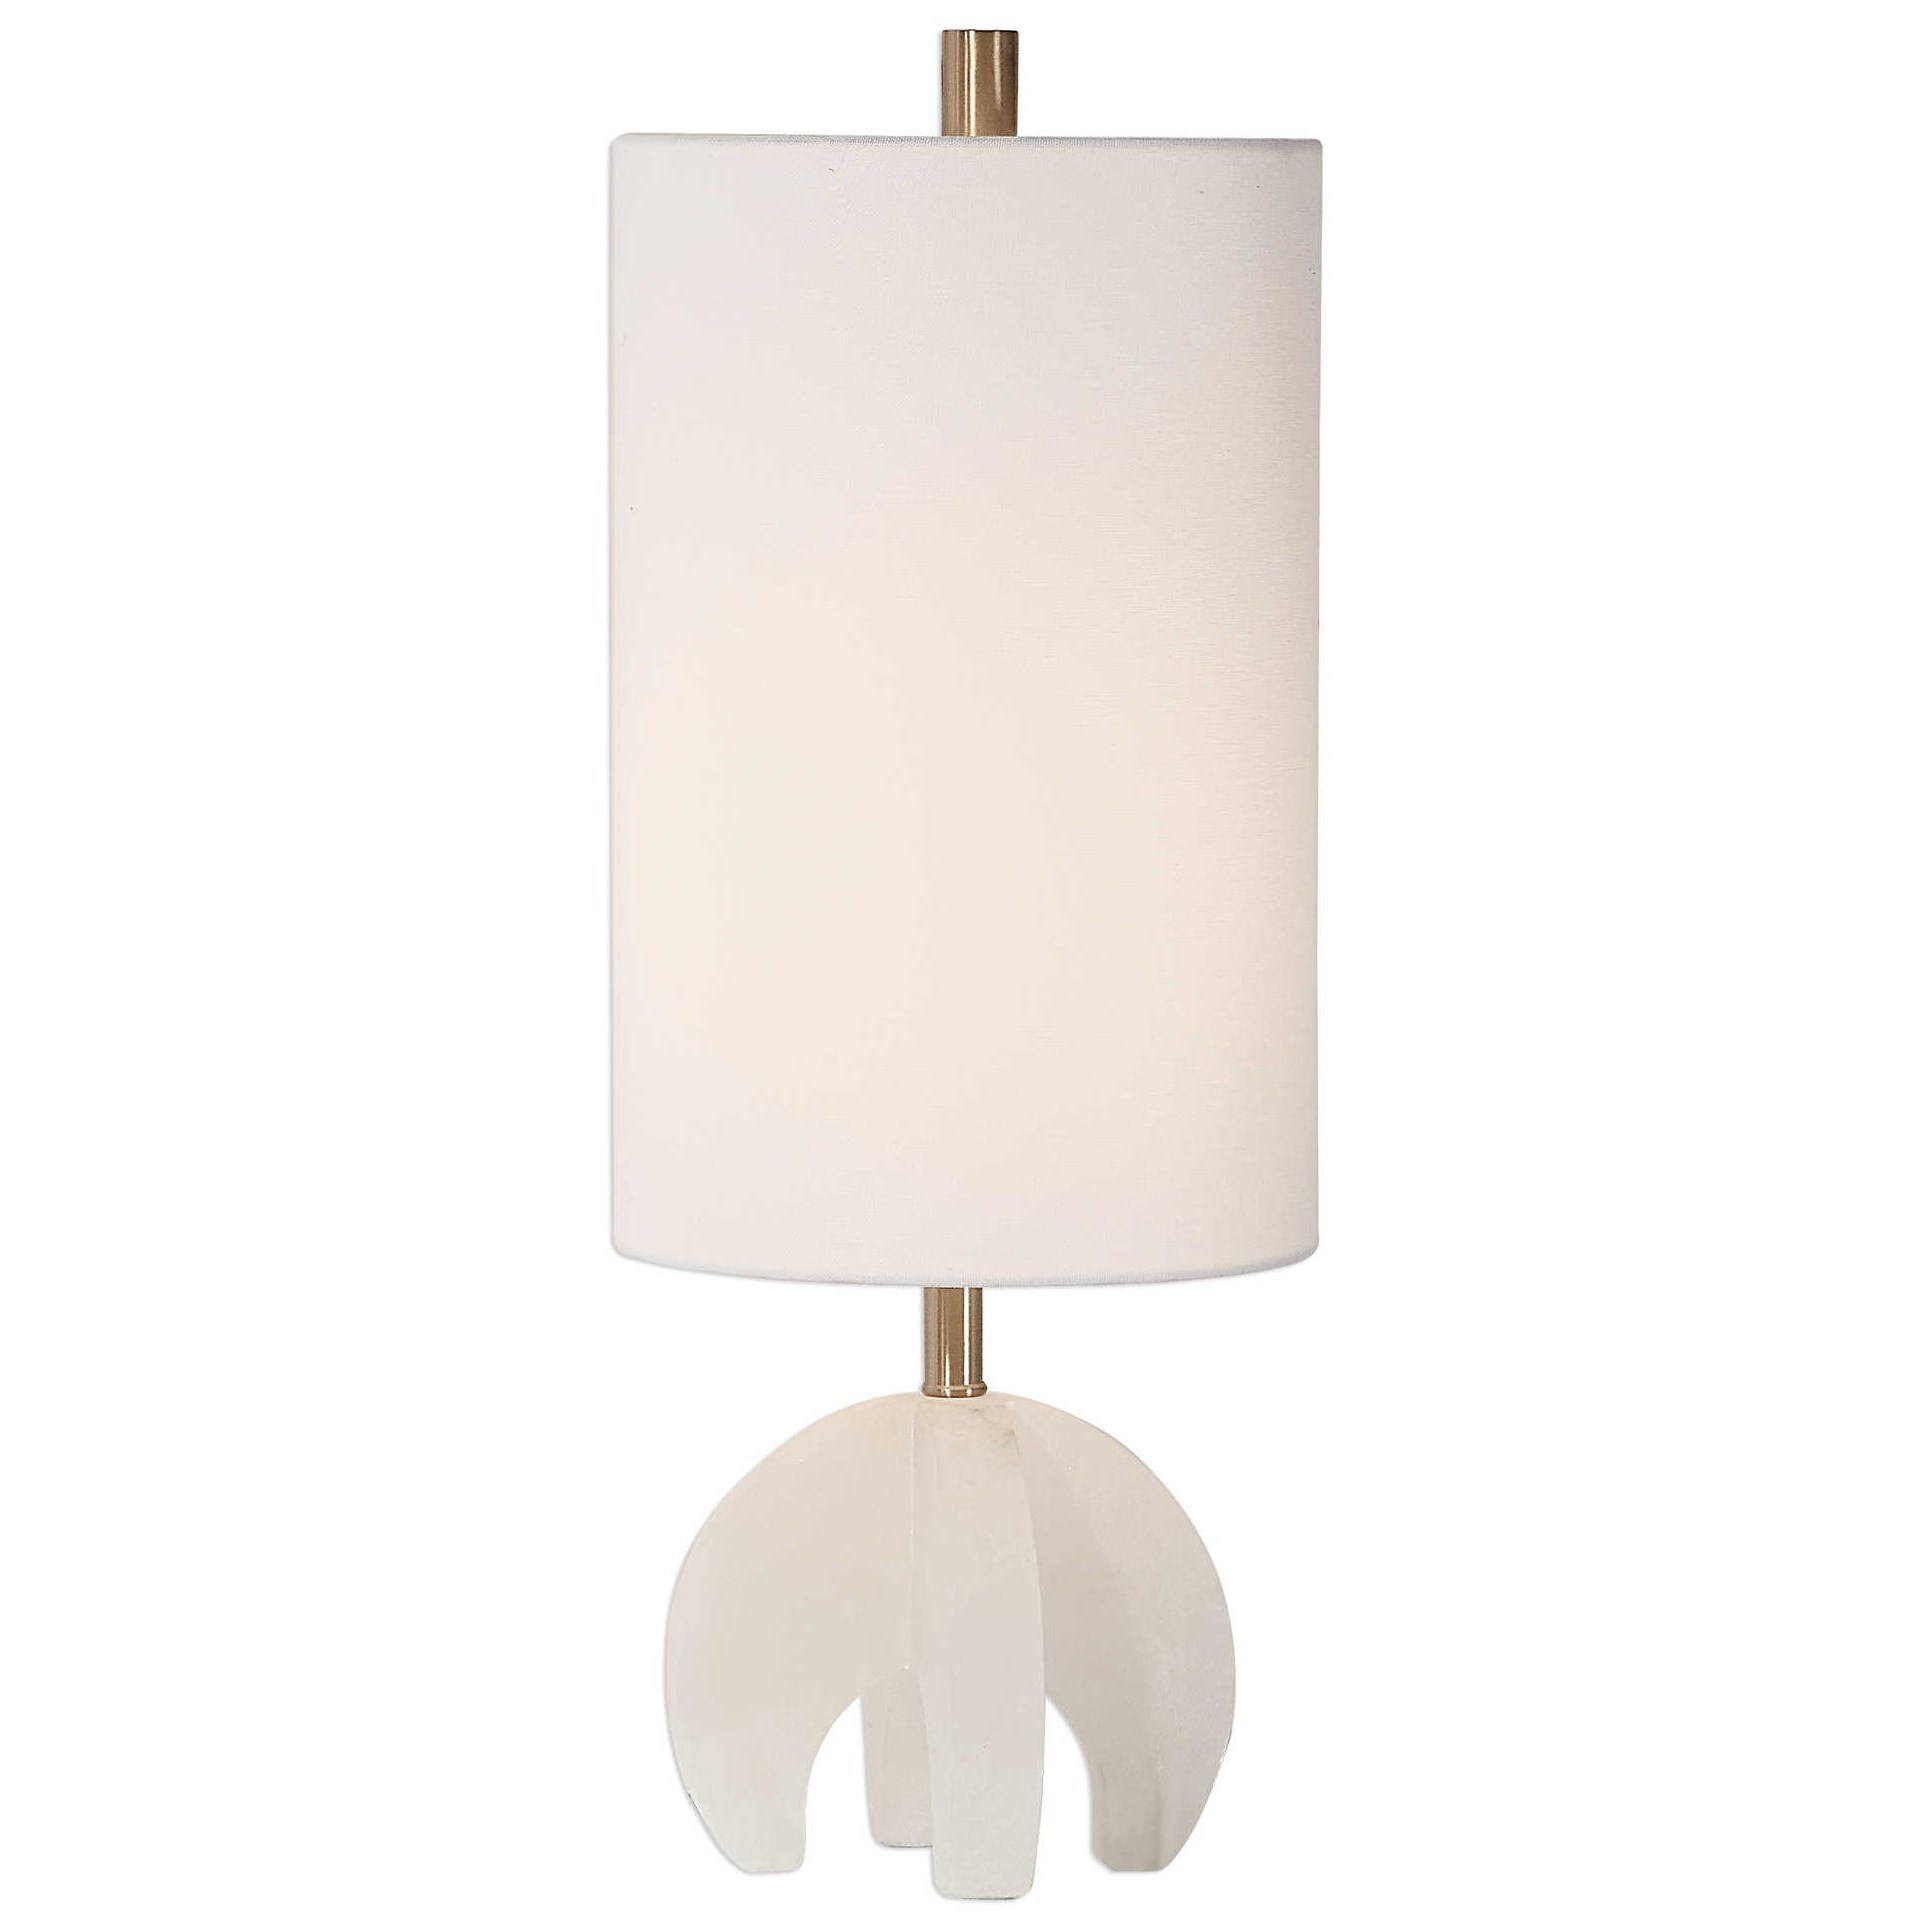 Accent Lamps  Alanea Accent Lamp by Uttermost at O'Dunk & O'Bright Furniture